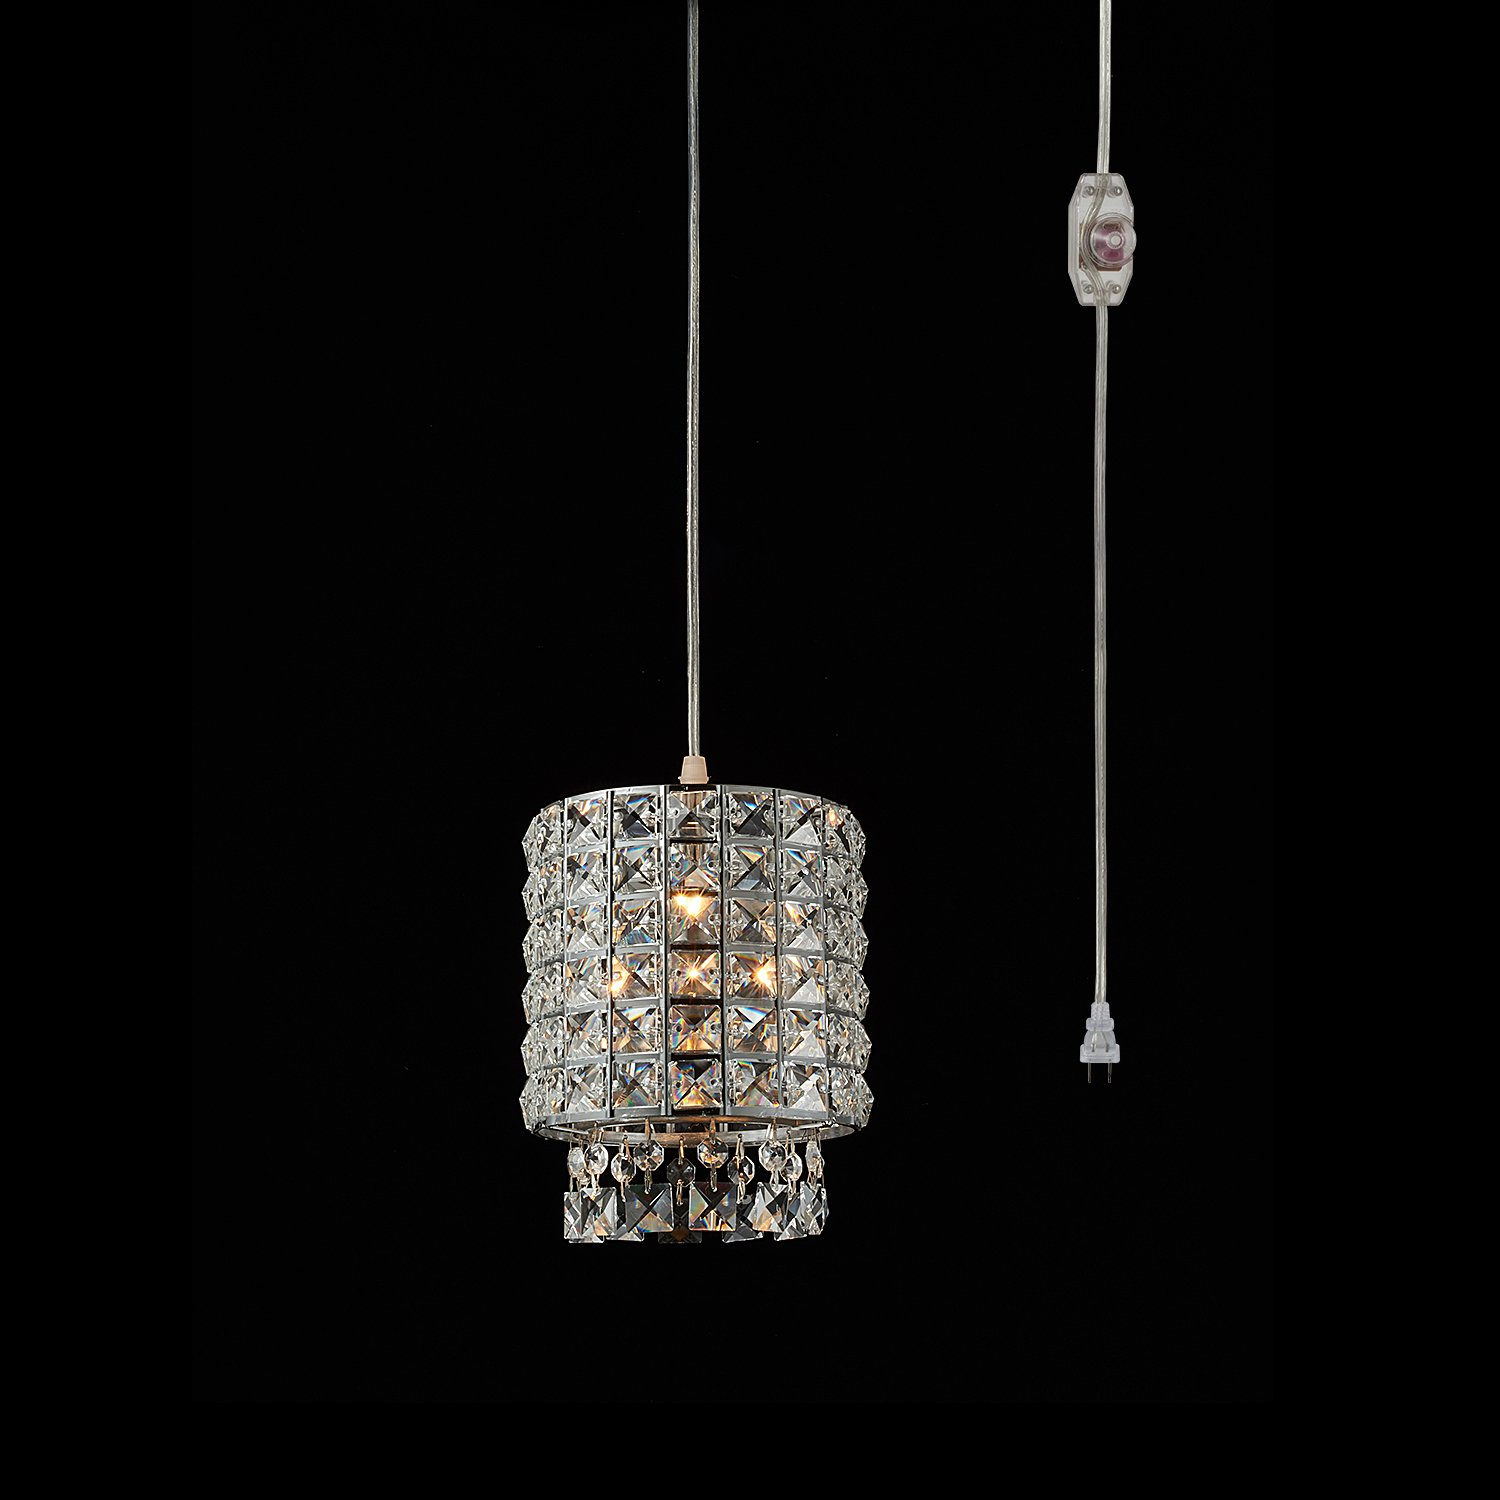 1-Light Portable Hanging Plug-In Pendant Silver Chandelier